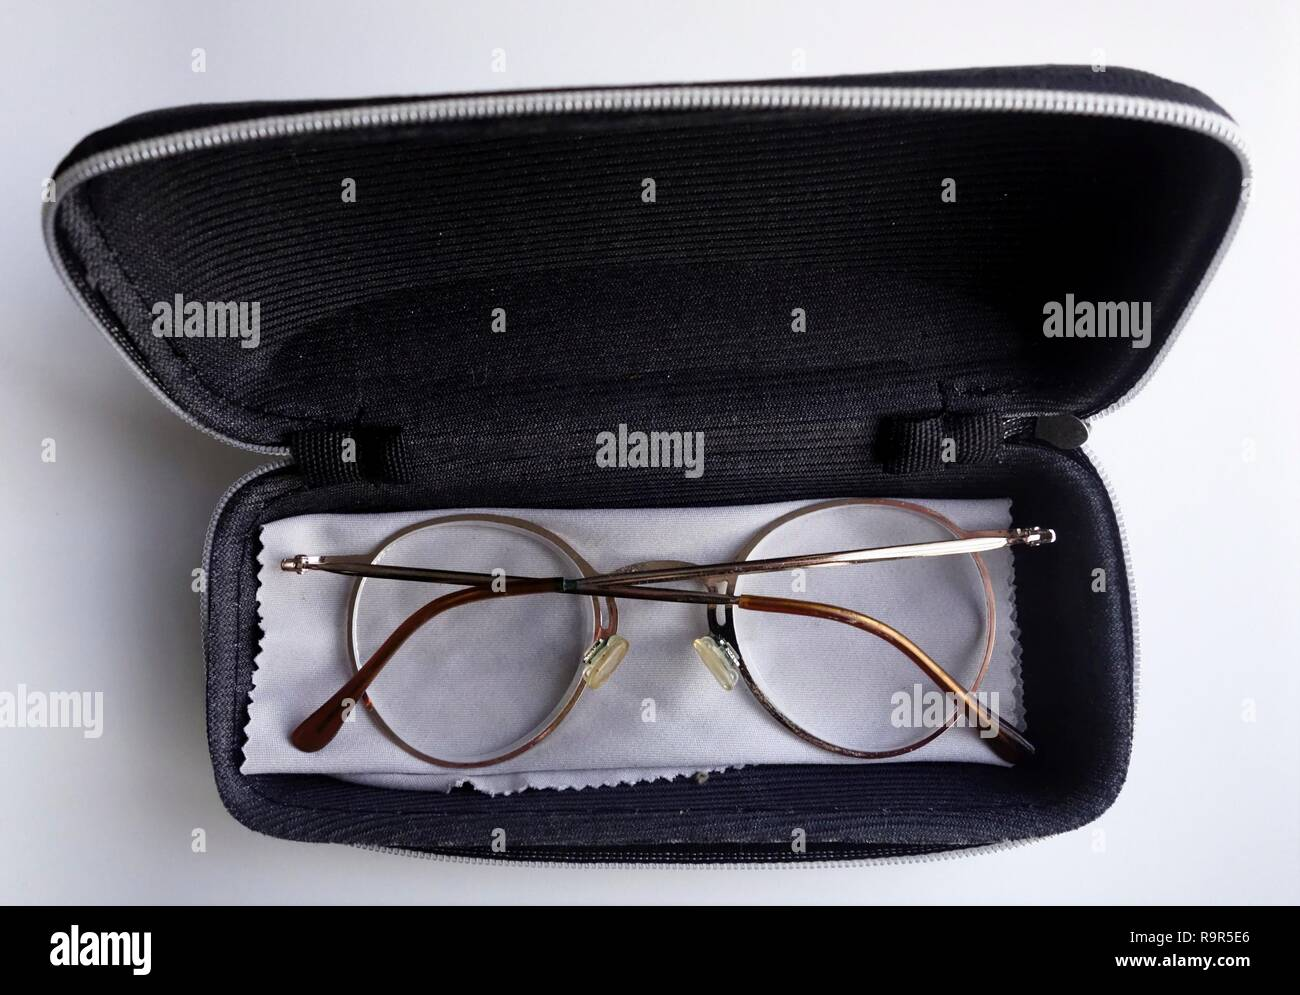 Spectacles with case - Stock Image